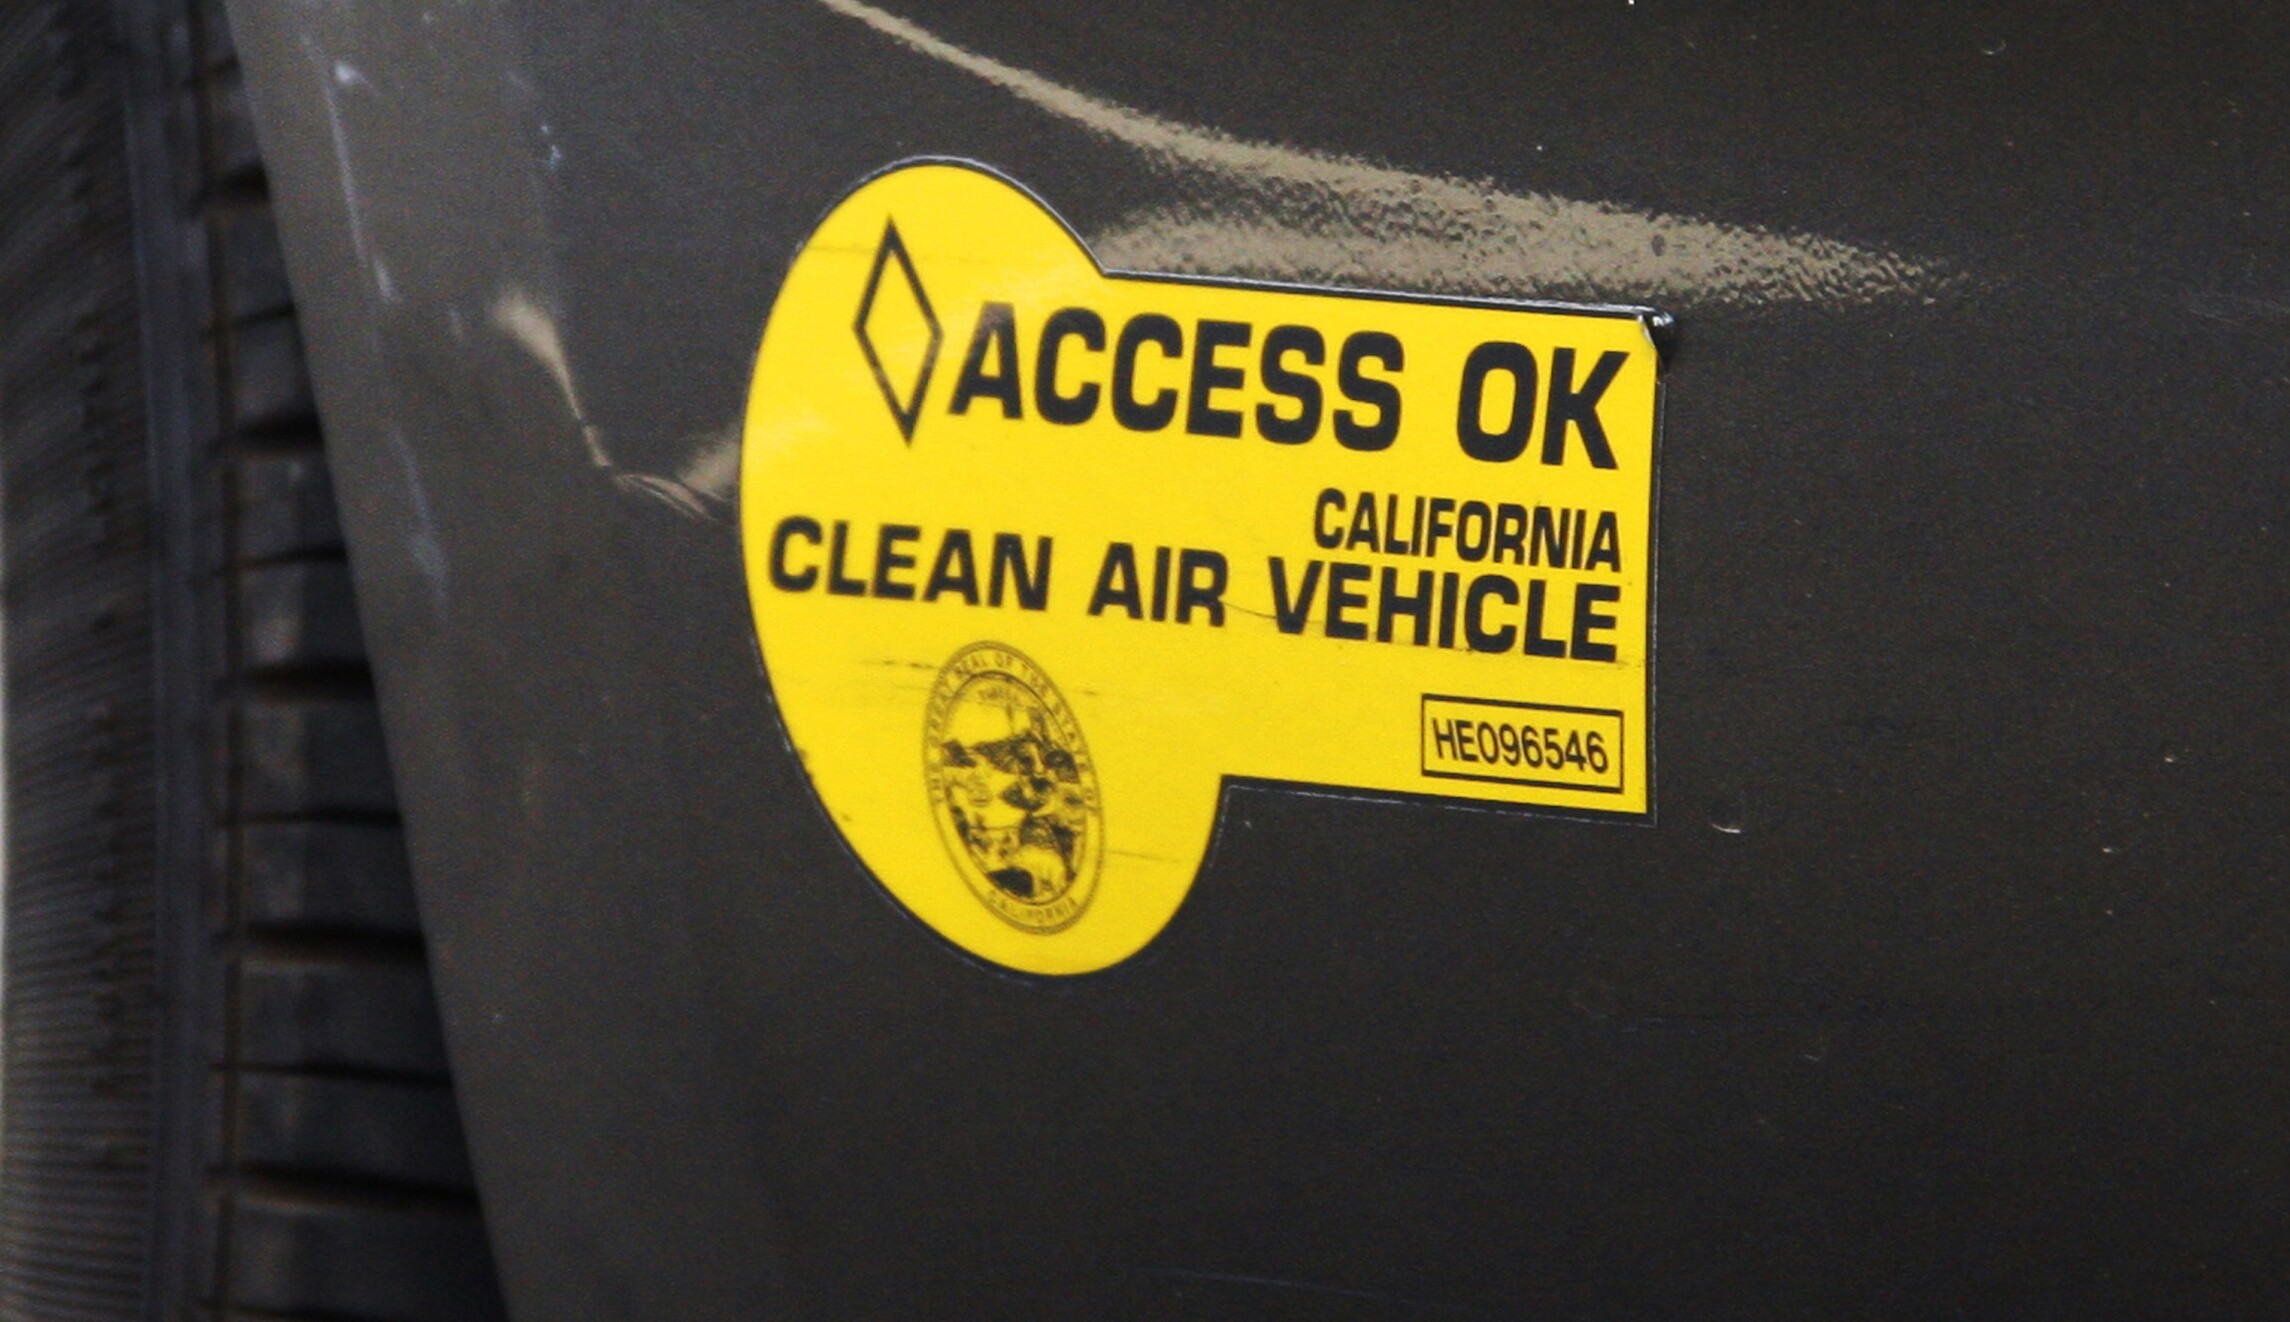 Why does California get a loophole in the Clean Air Act?